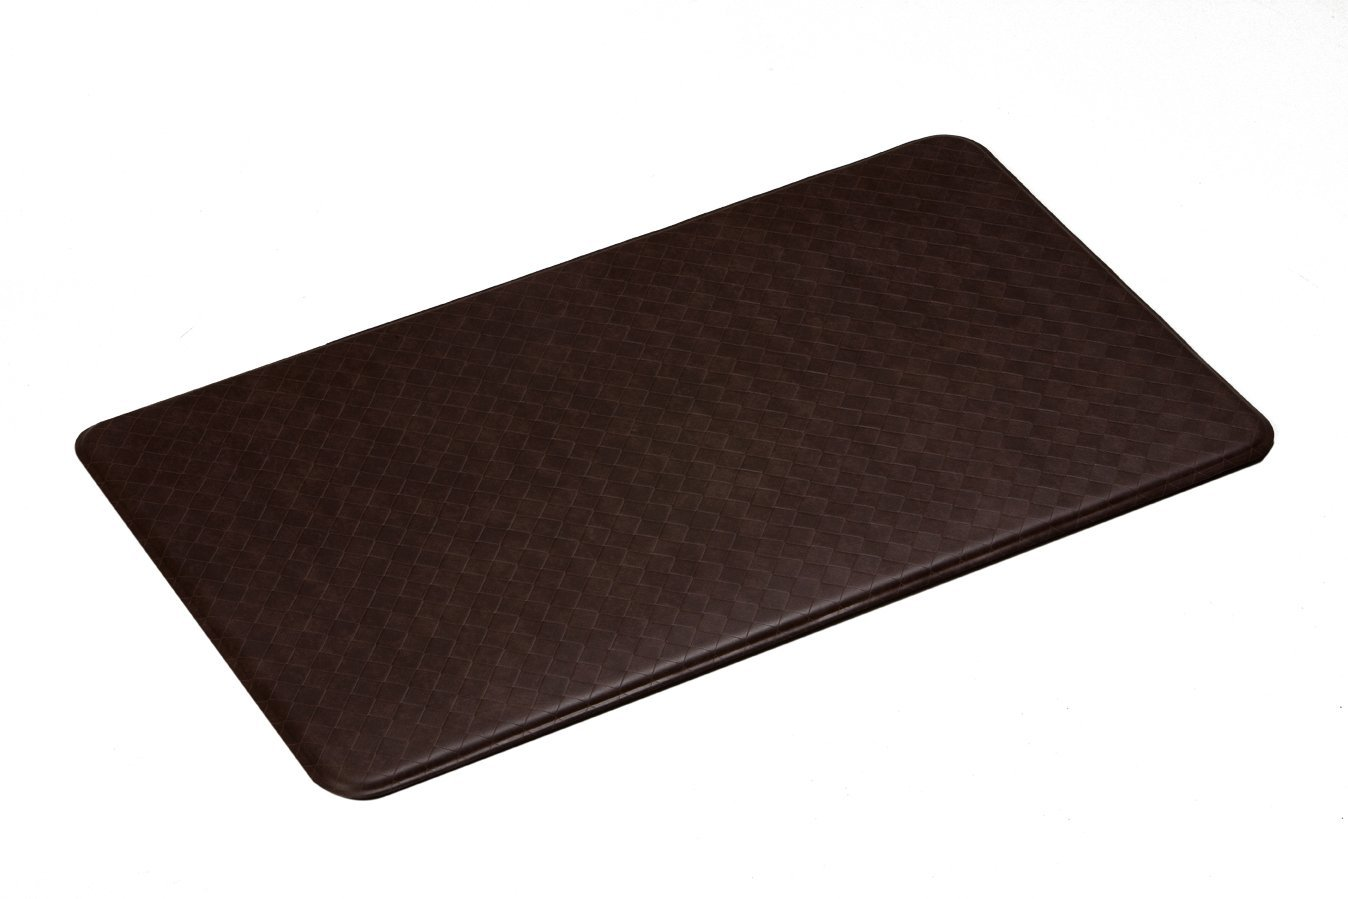 Imprint Cumulus9 Standing Mat  WorkWhileWalkingcom